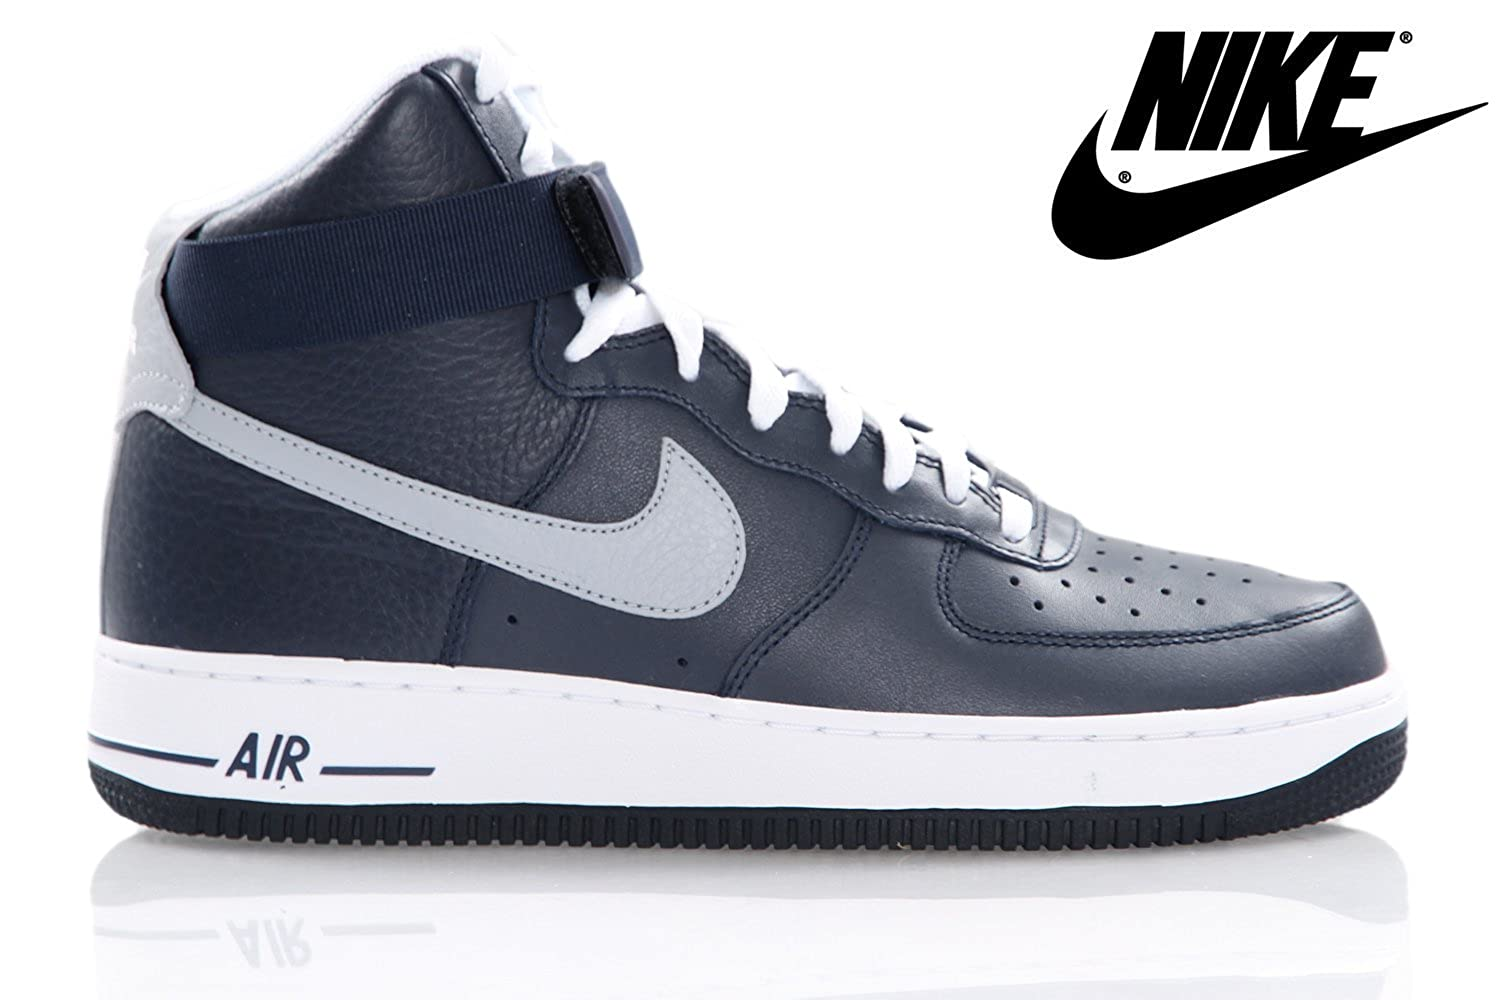 nouvelle arrivee 583ba 4a2ed Nike AIR FORCE 1 HIGH 07 Baskets Homme 315121-404-42-8.5 ...